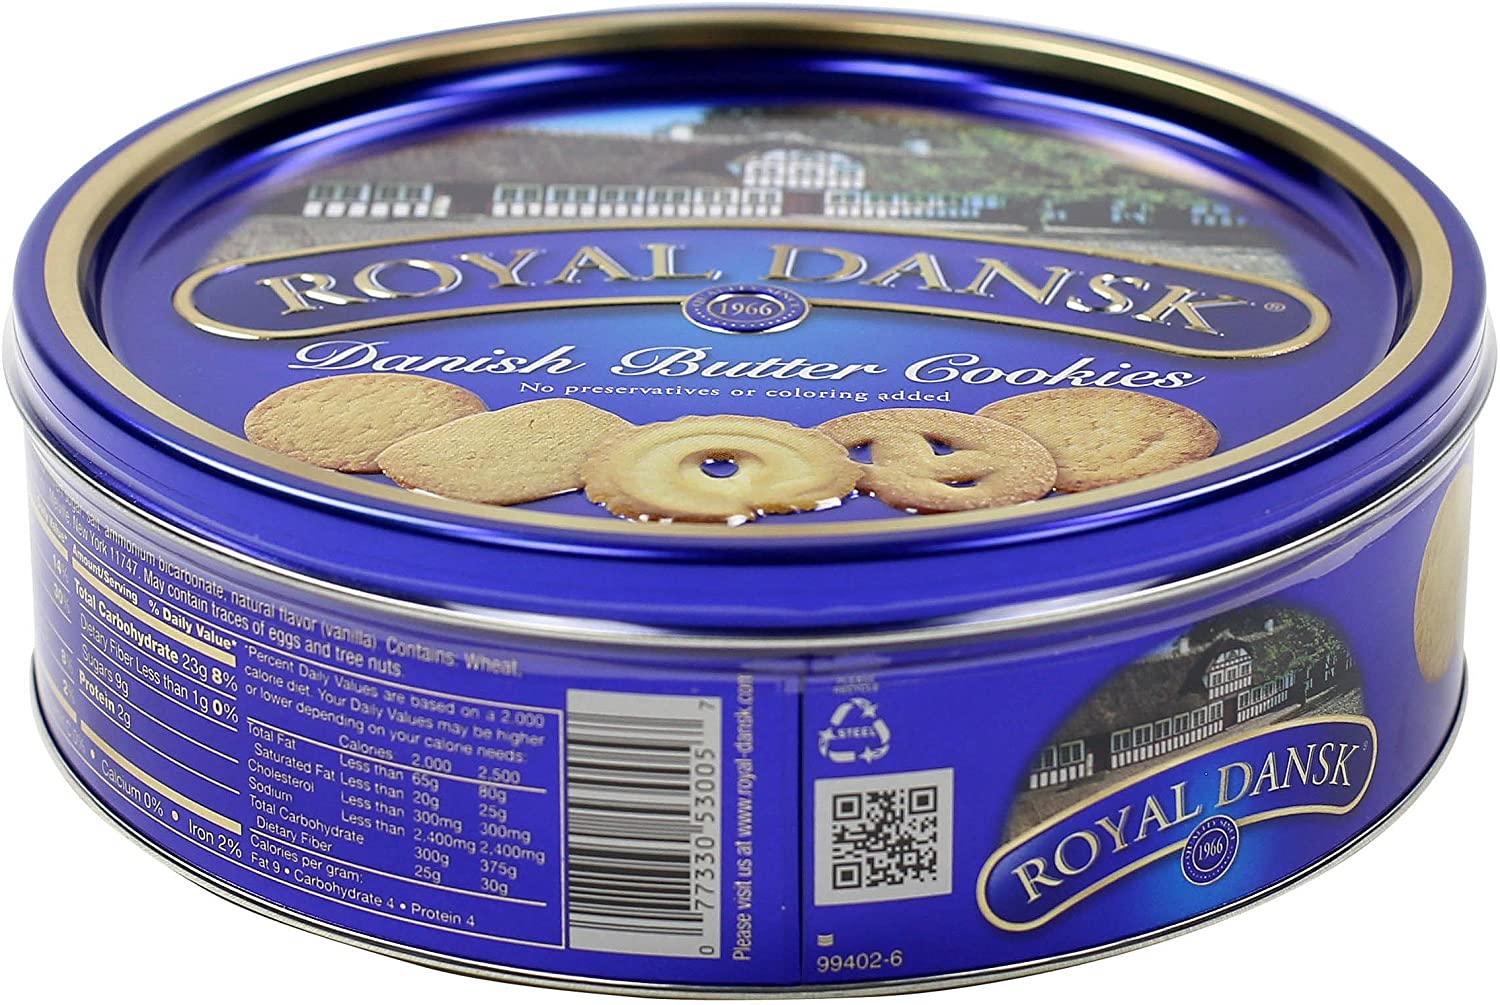 Royal Dansk Danish Butter Cookies as low as $3.21!